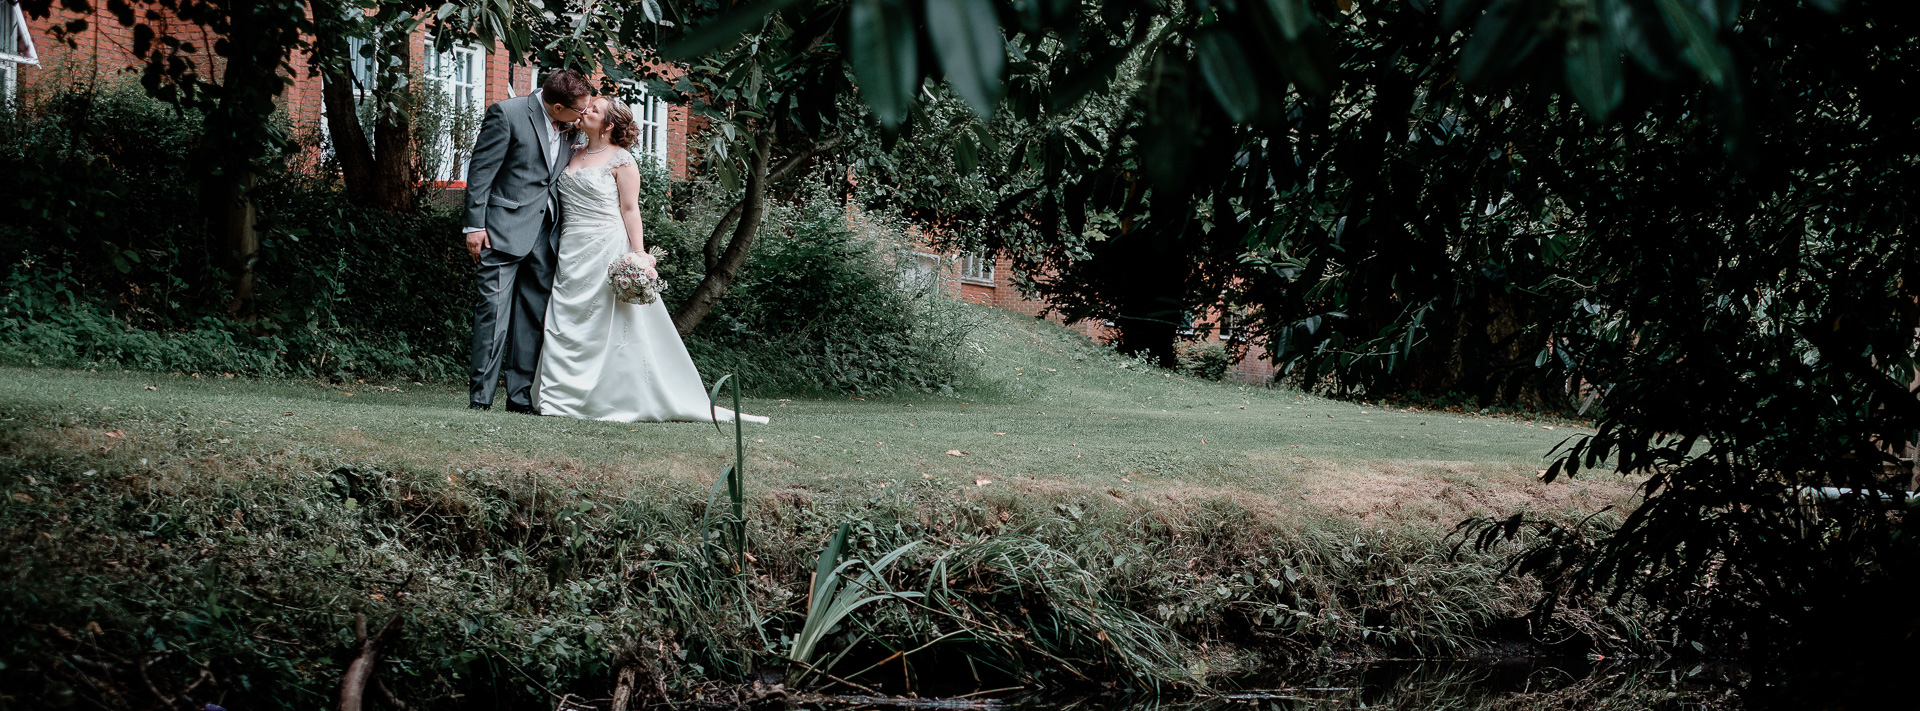 Laura and Peter's Wedding at Belstead Brook Hotel